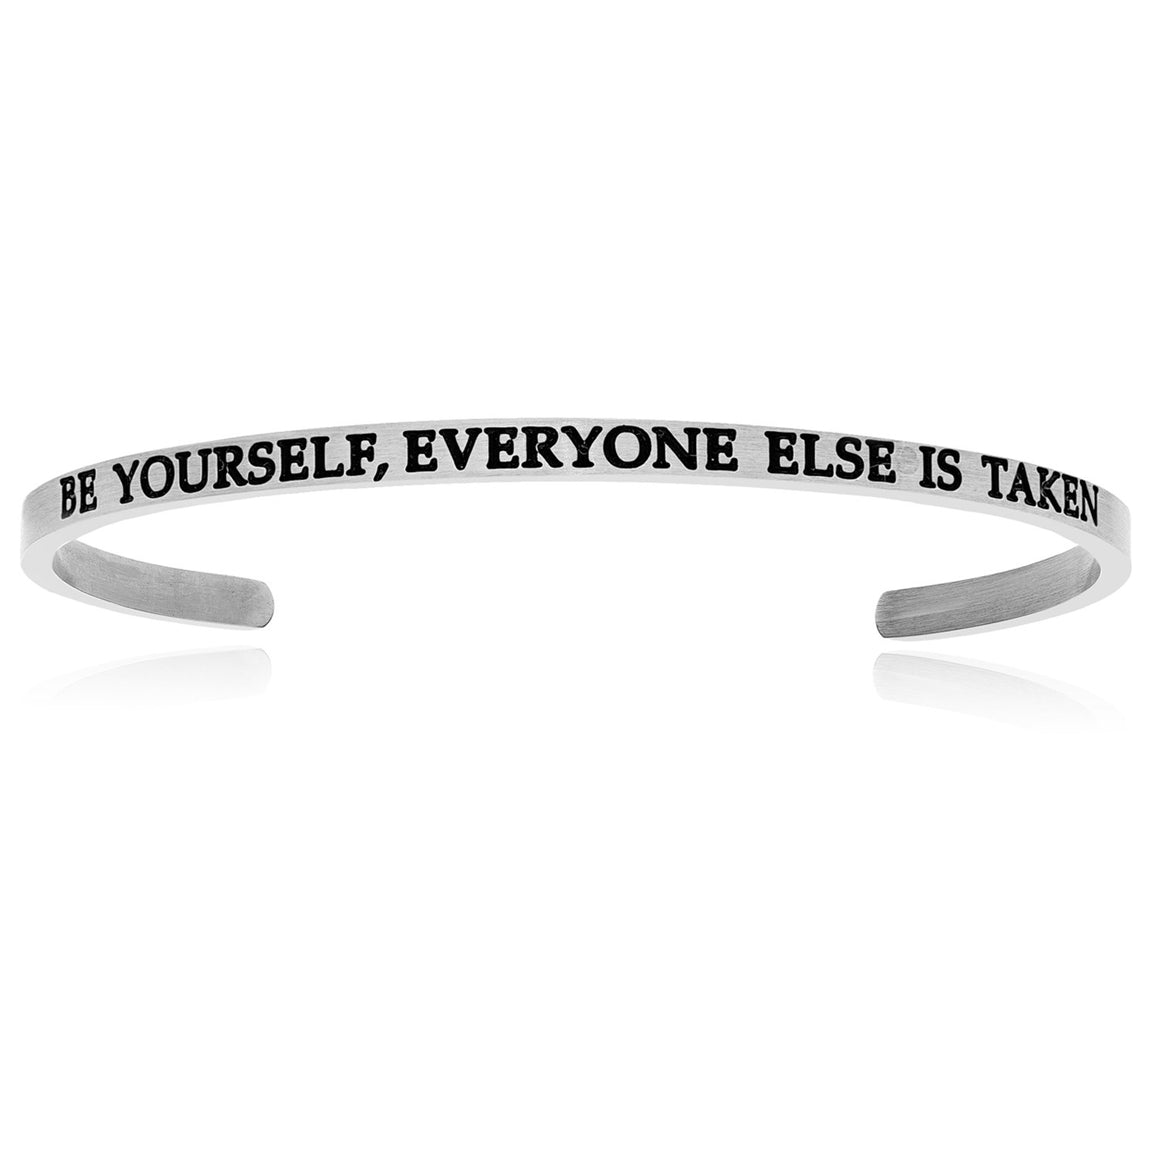 Stainless Steel Be Yourself Everyone Else Is Taken Cuff Bracelet